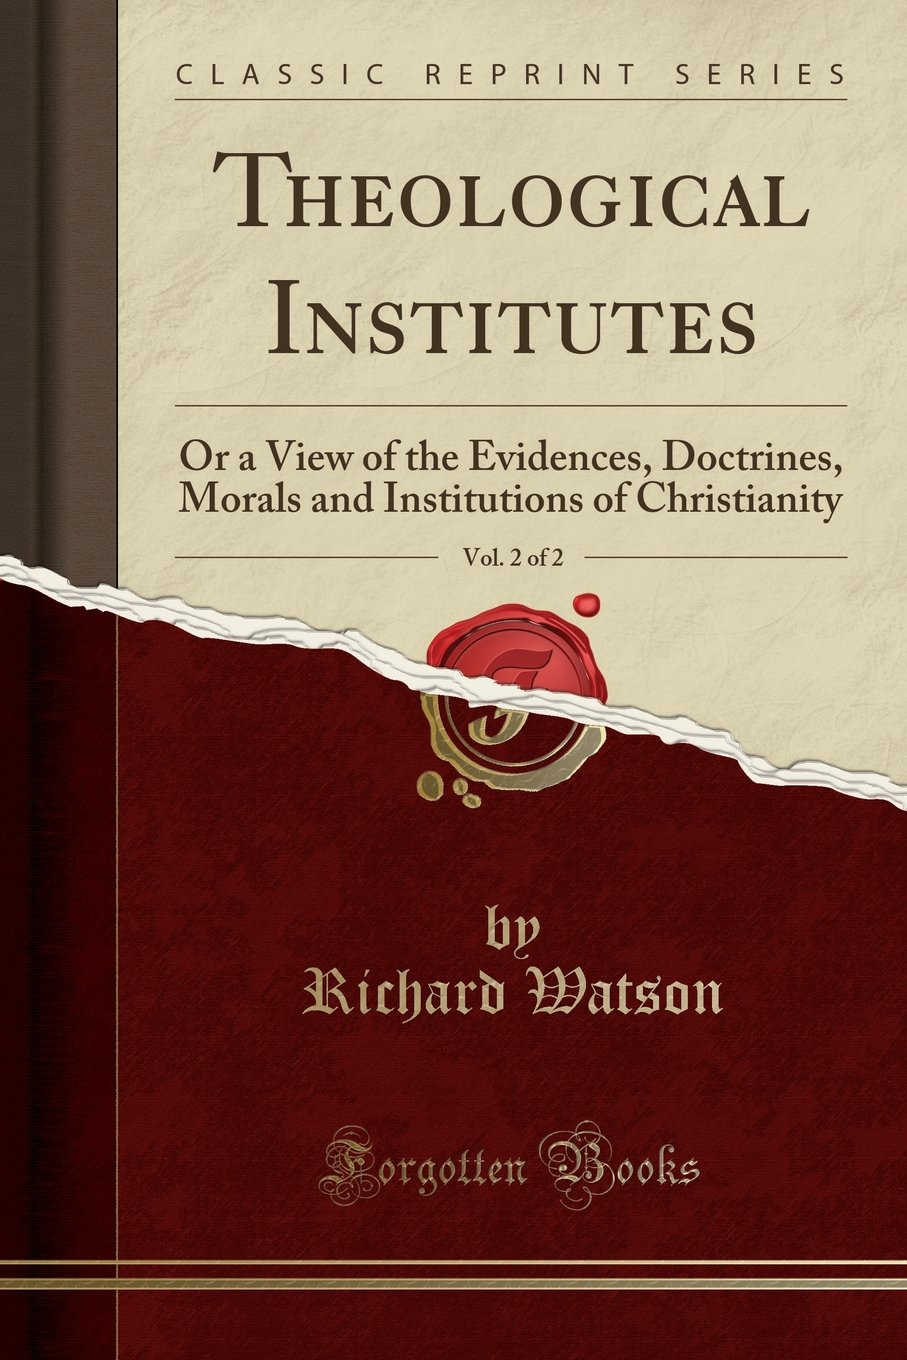 Download Theological Institutes, Vol. 2 of 2: Or a View of the Evidences, Doctrines, Morals and Institutions of Christianity (Classic Reprint) PDF